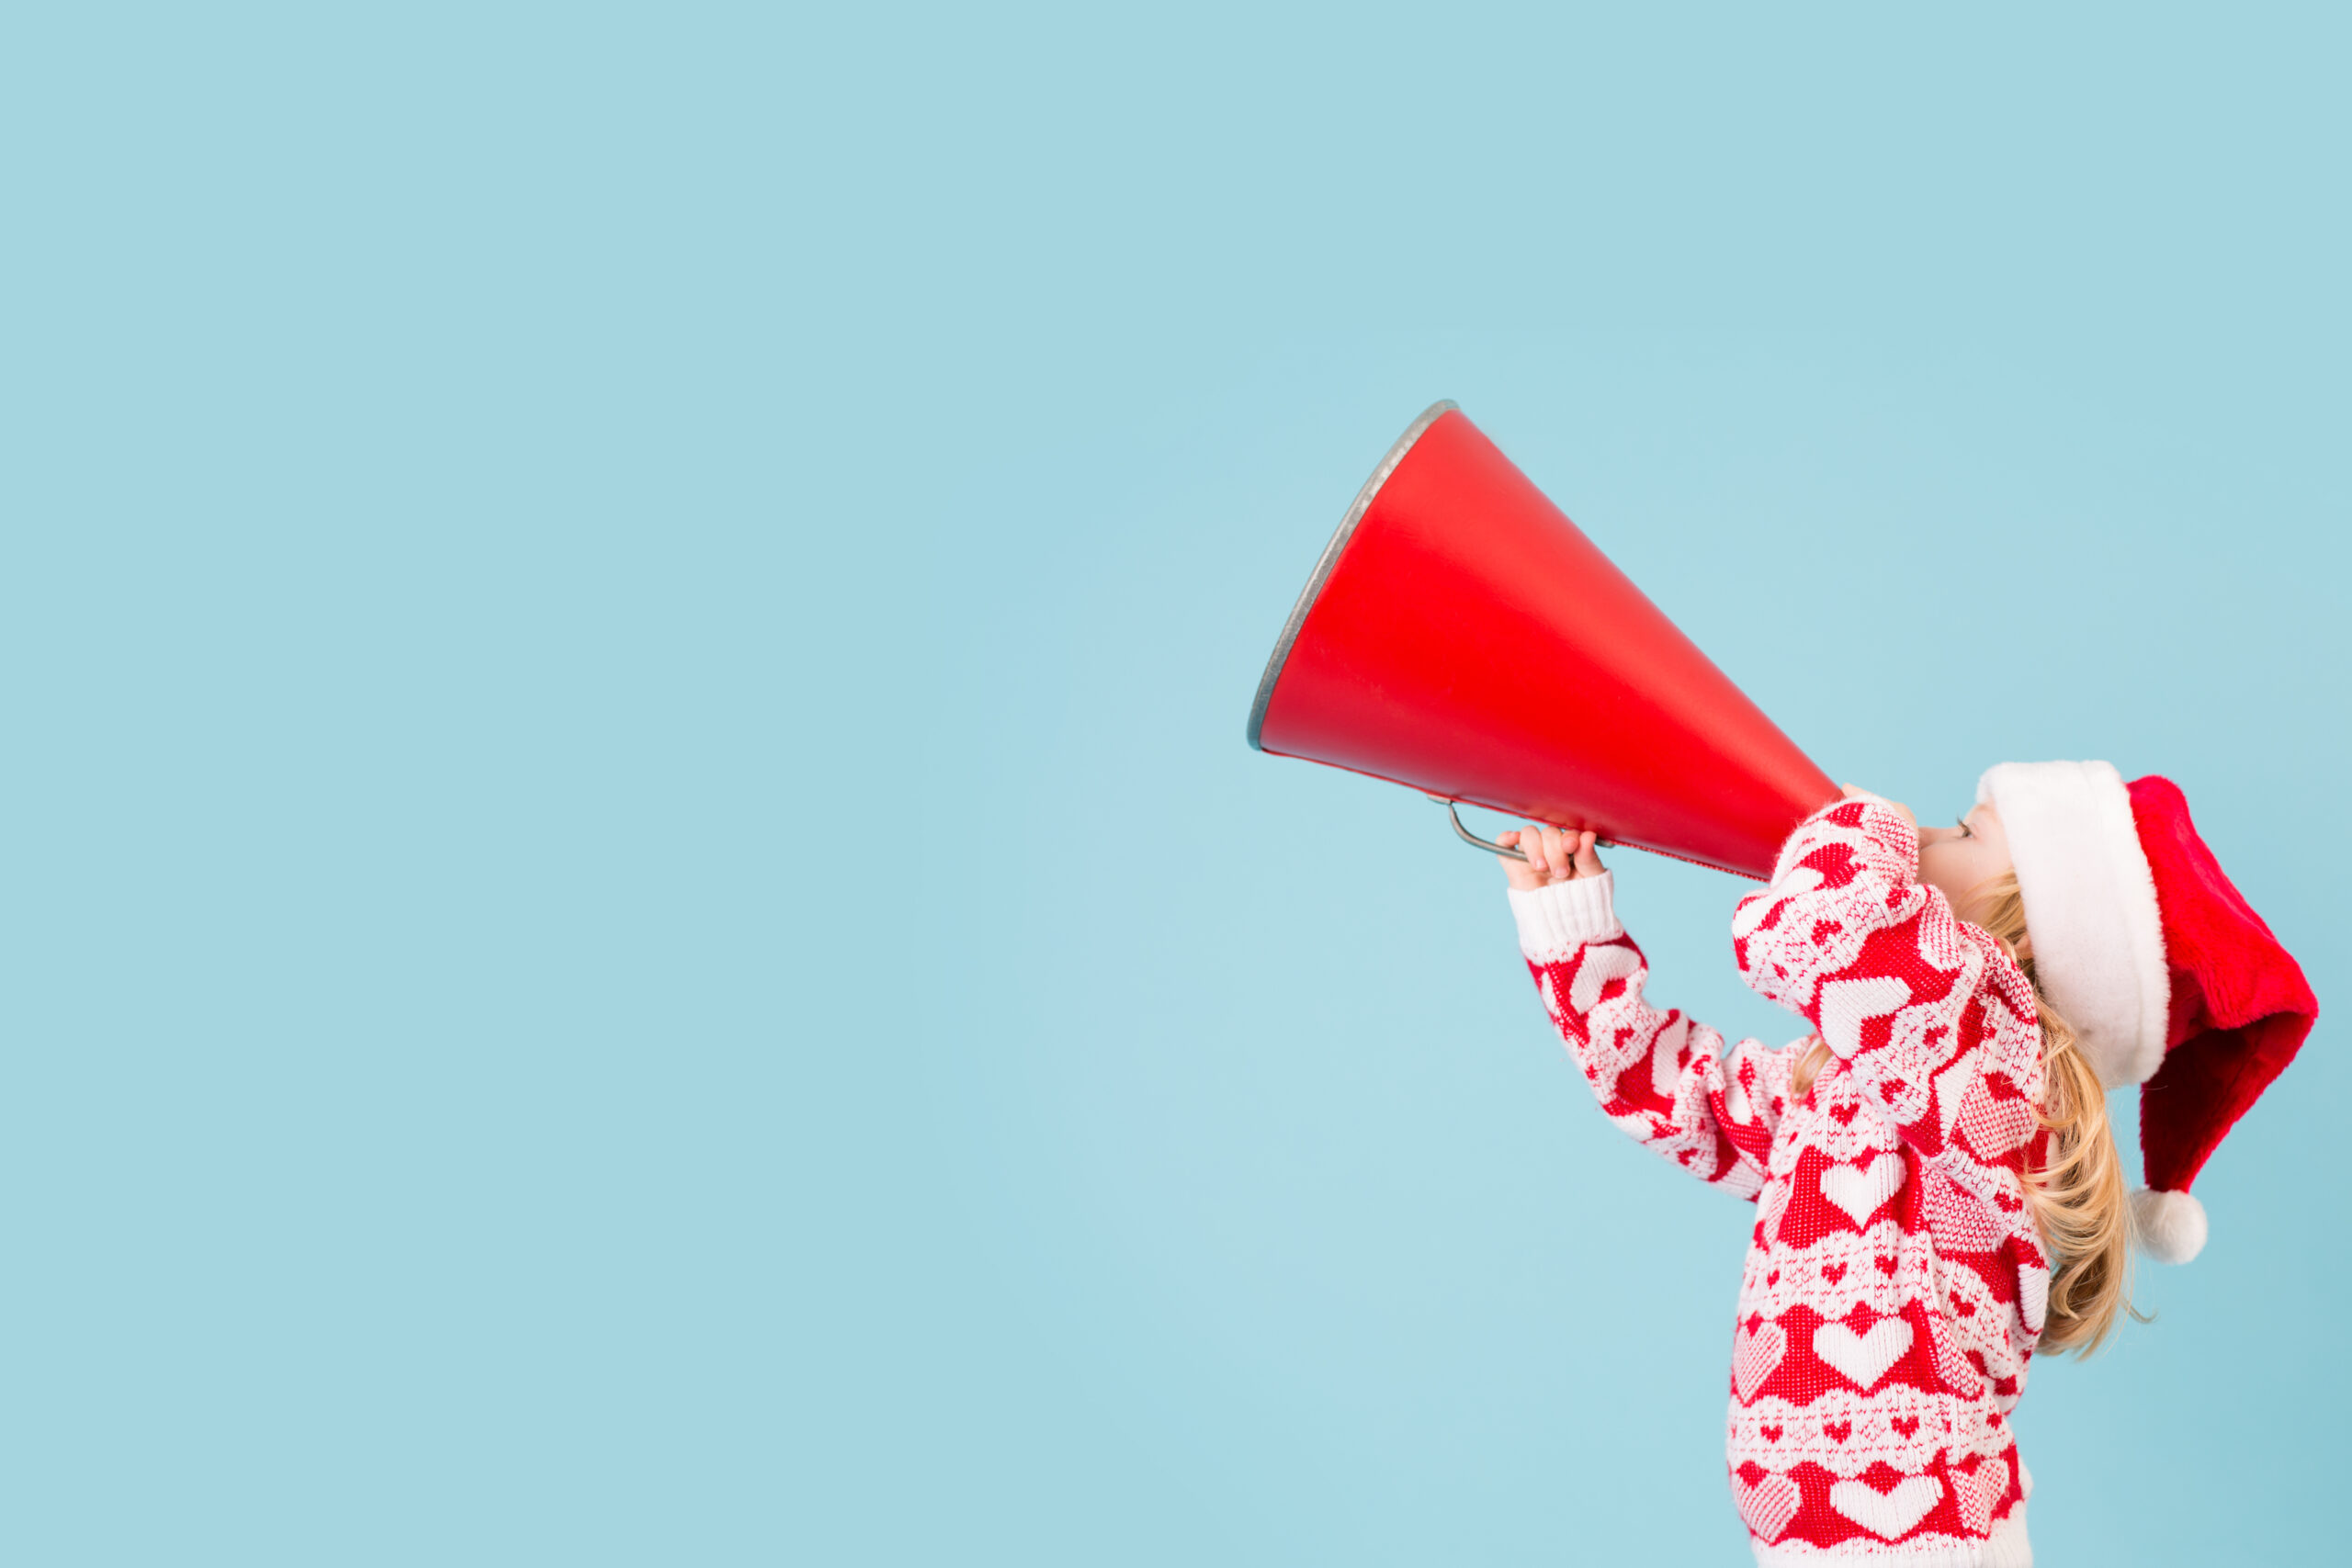 Little Christmas Girl in Santa Hat with Megaphone, Room for Text